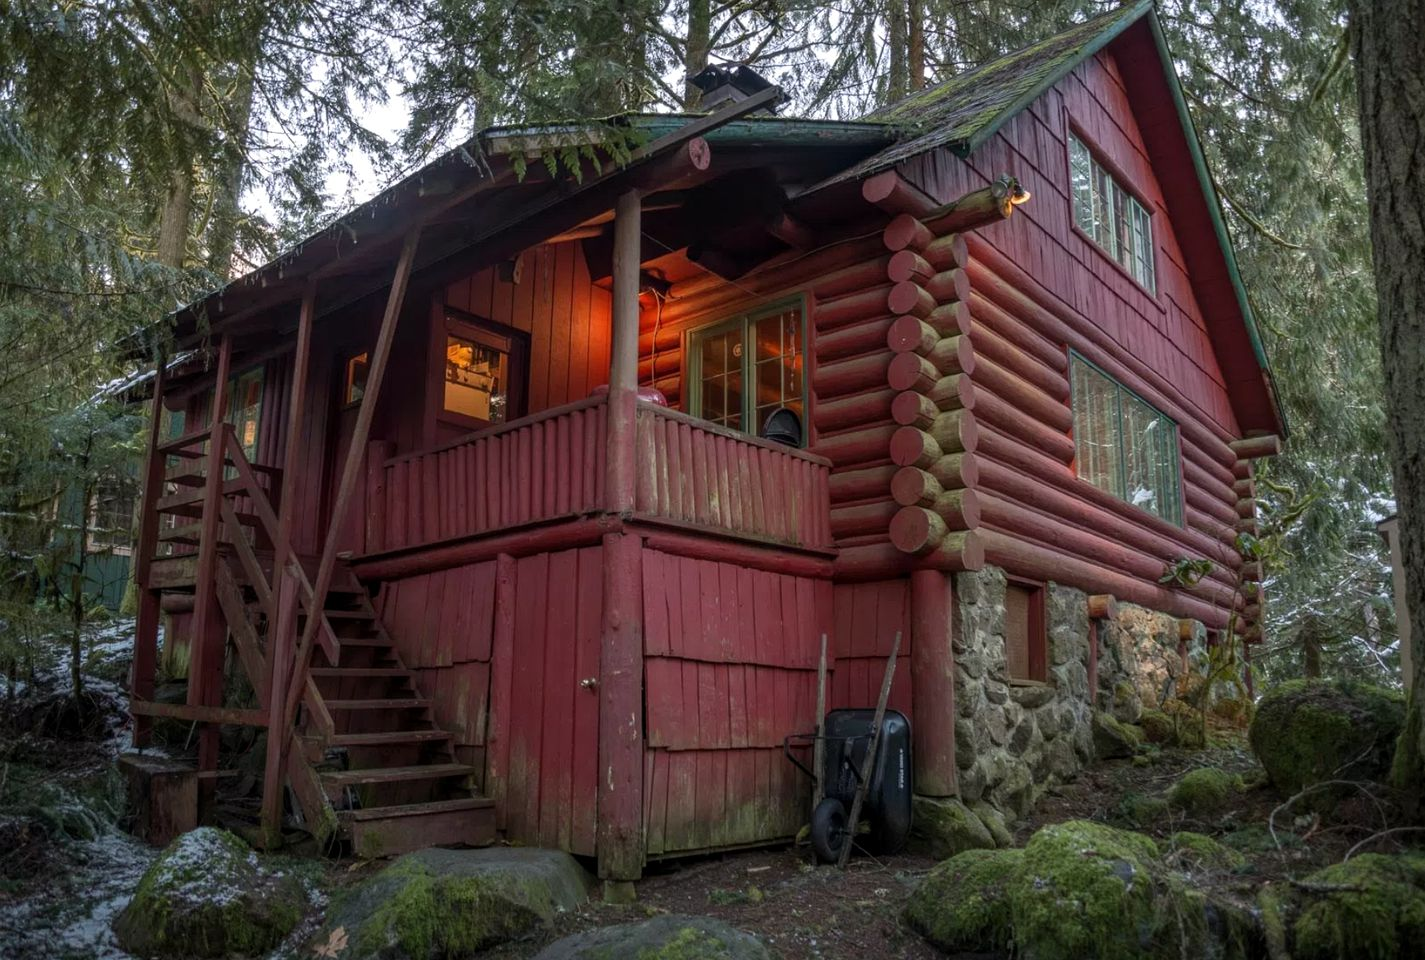 Cabins (Rhododendron, Oregon, United States)